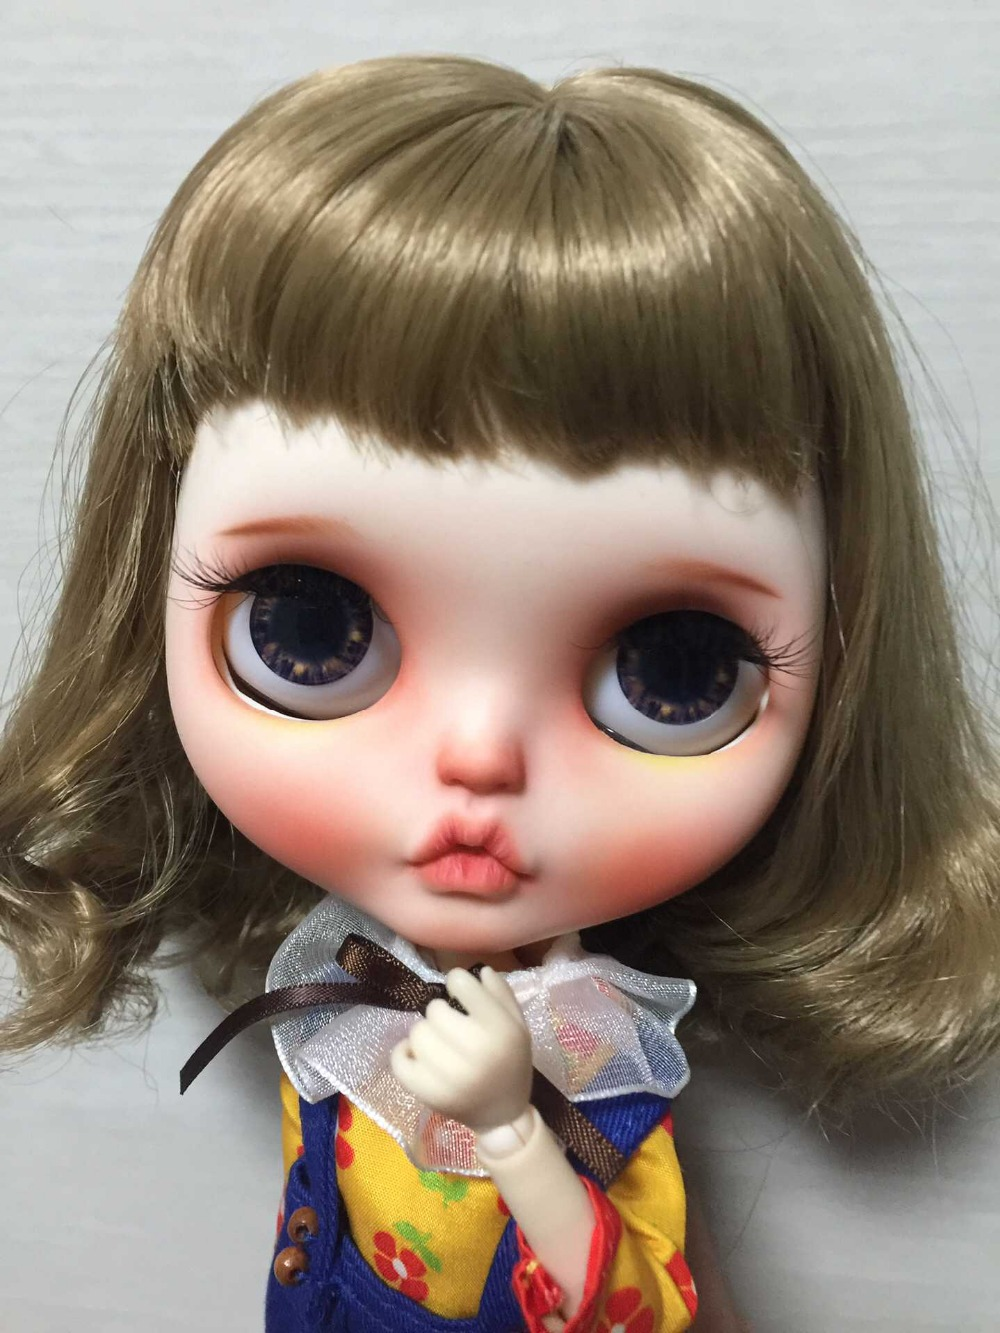 Blyth girl Customized doll Selling customized face and doll NO KSD04